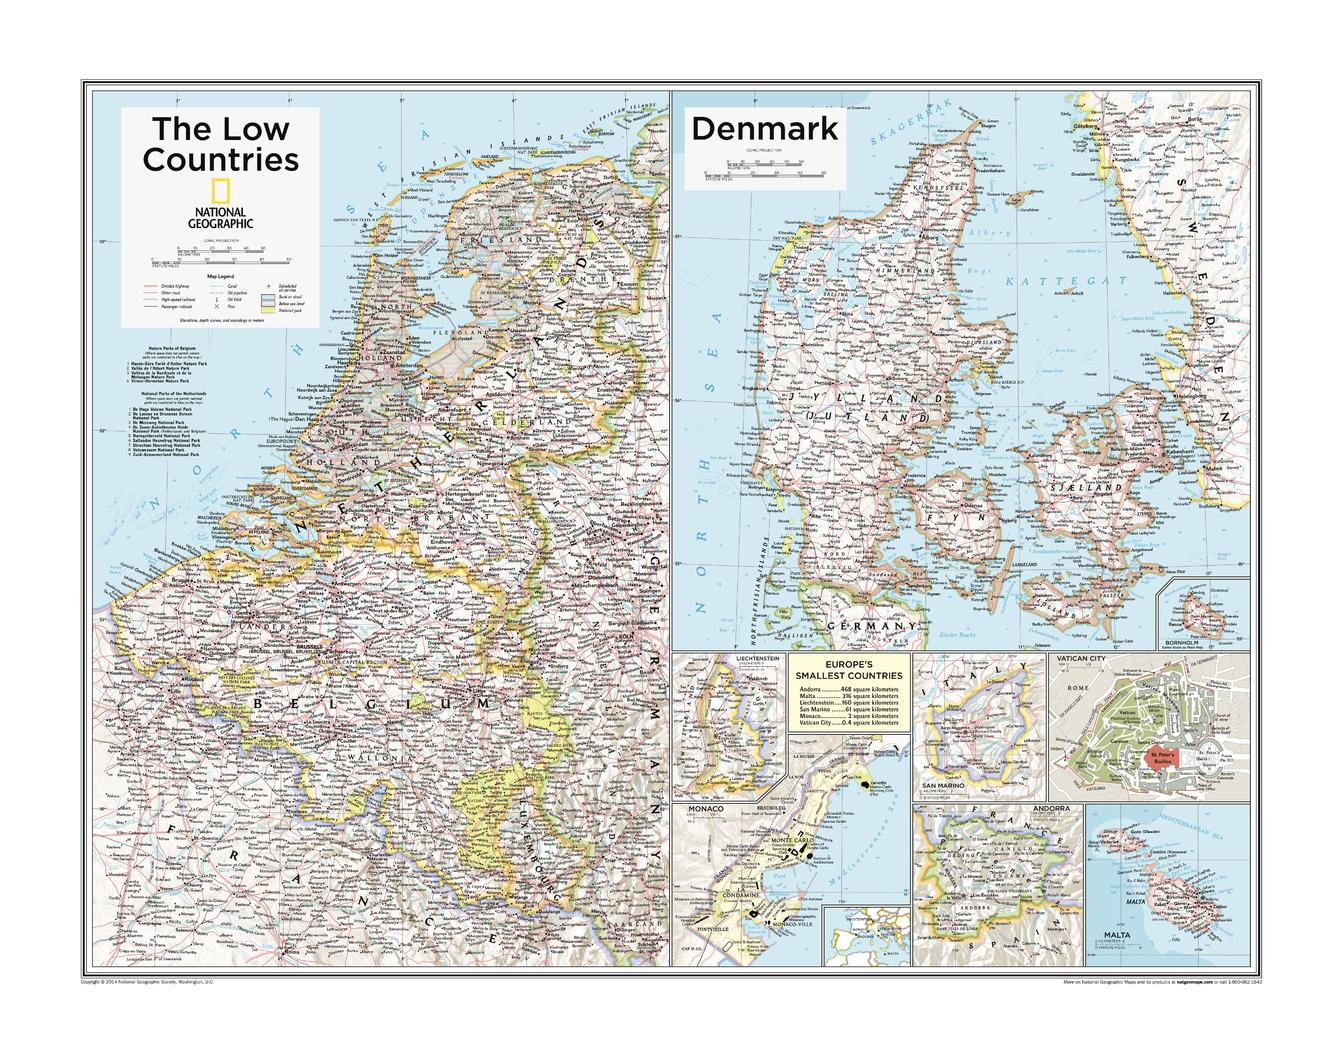 The Low Countries, Denmark, and Europe's Smallest Countries